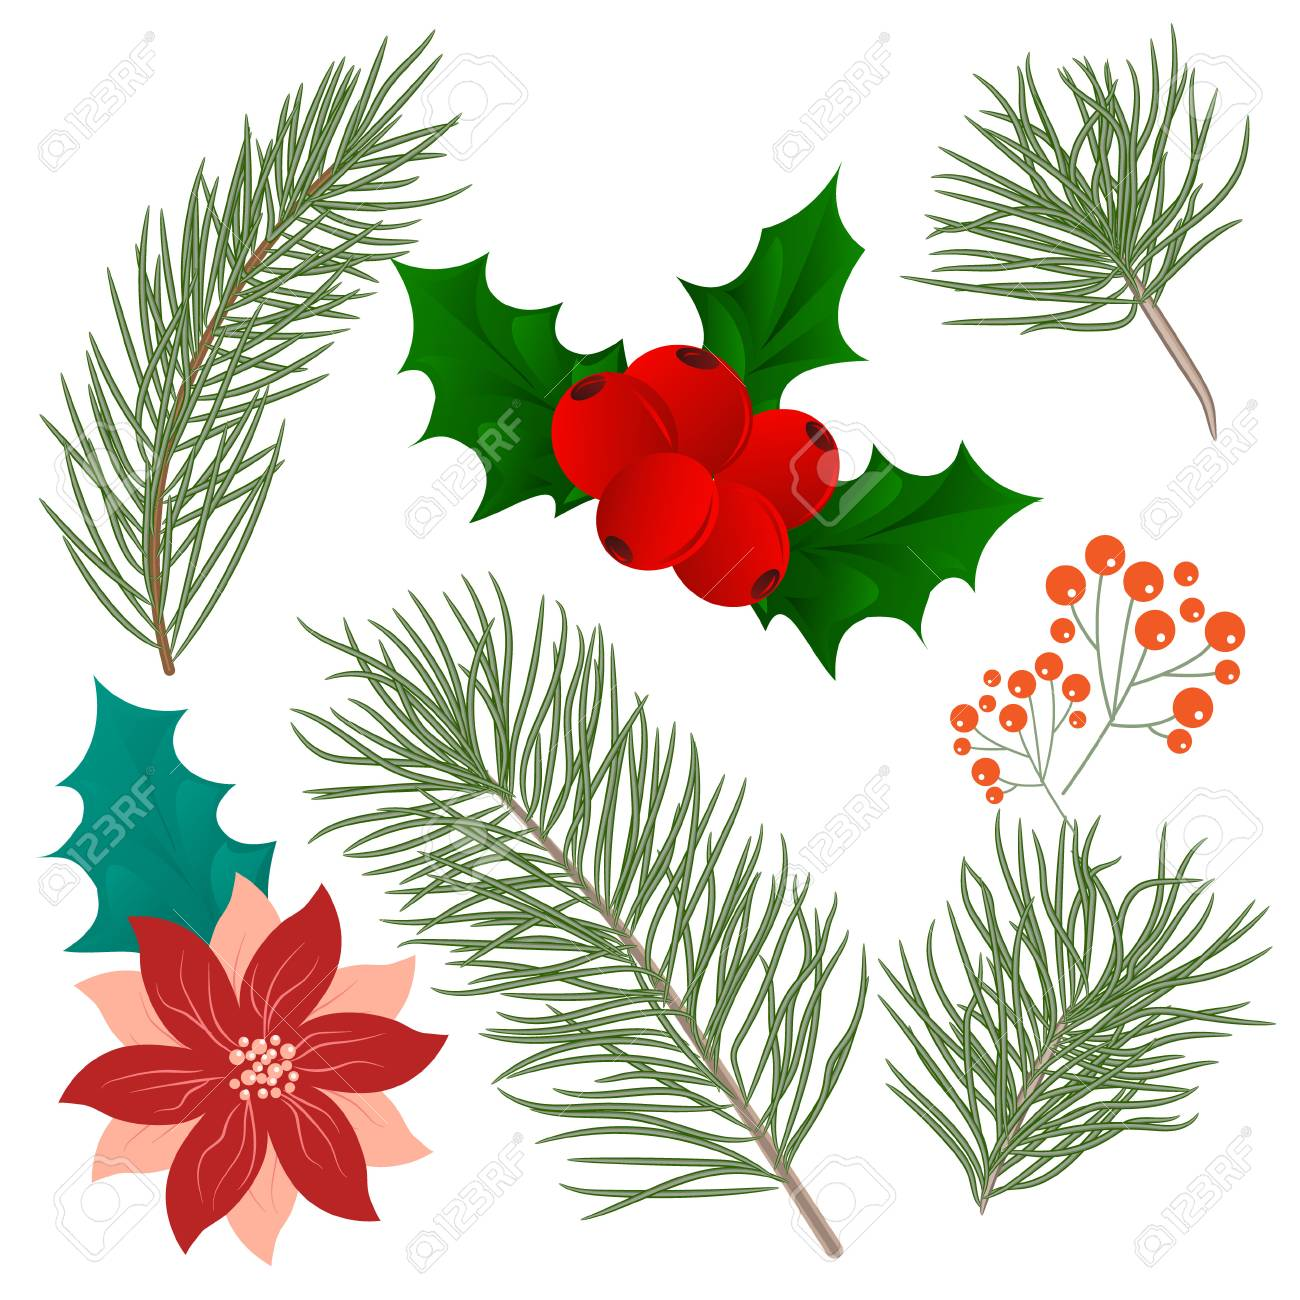 Christmas Branch Vector.Christmas Tree Branches Set For Christmas Decor Branches Close Up